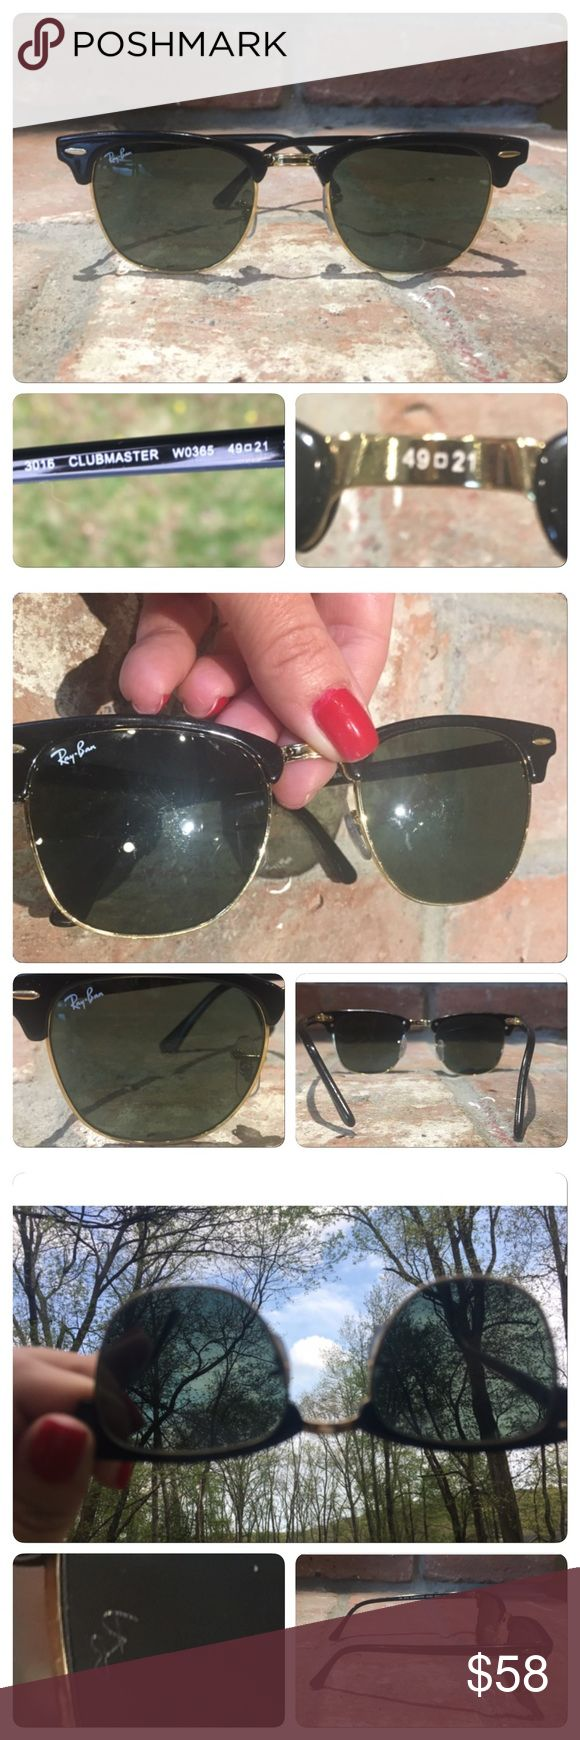 Vtg 80s Ray Ban black club master sunglasses Vintage 80s Ray Ban sunglasses  ray m  club master half frame sunglasses black gold. No cracks in frames. Some slight  scratches to lens from age. Lens Engraved with RB ..Stamped and engraved at nose 49 21  No Case. Vintage Accessories Sunglasses